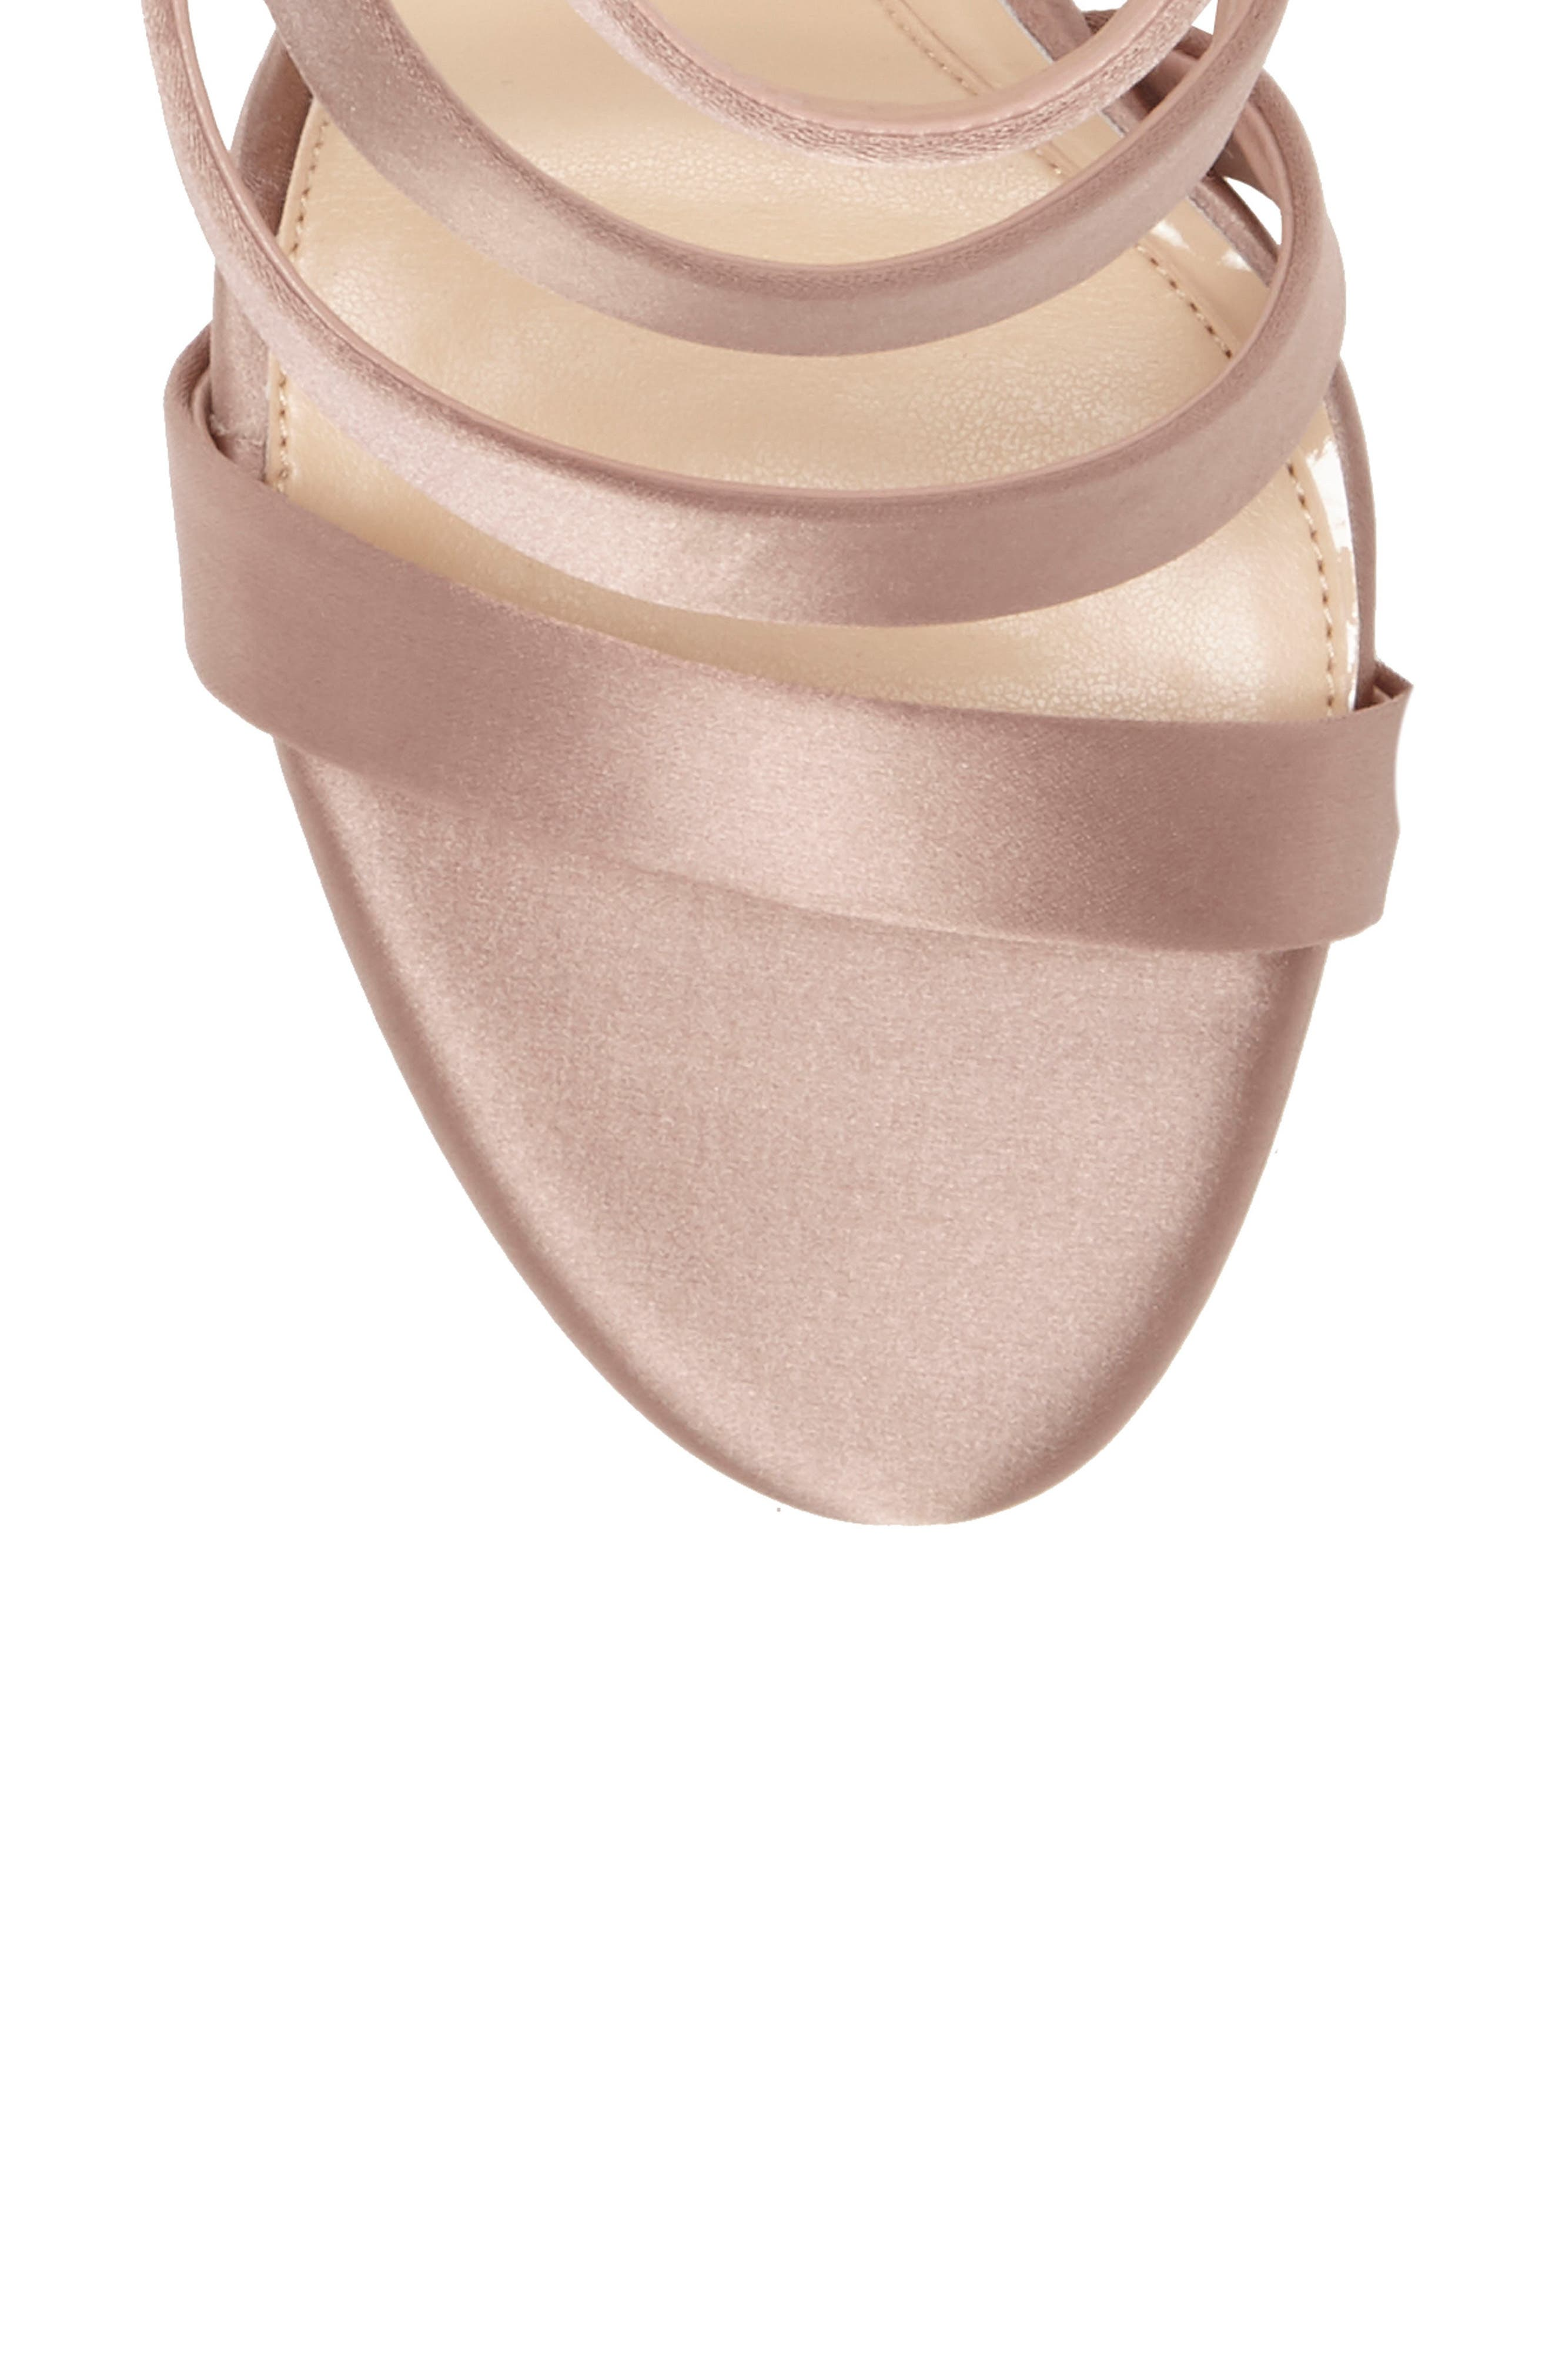 Imagine Vince Camuto Dalles Tall Strappy Sandal,                             Alternate thumbnail 7, color,                             WARM TAUPE SATIN